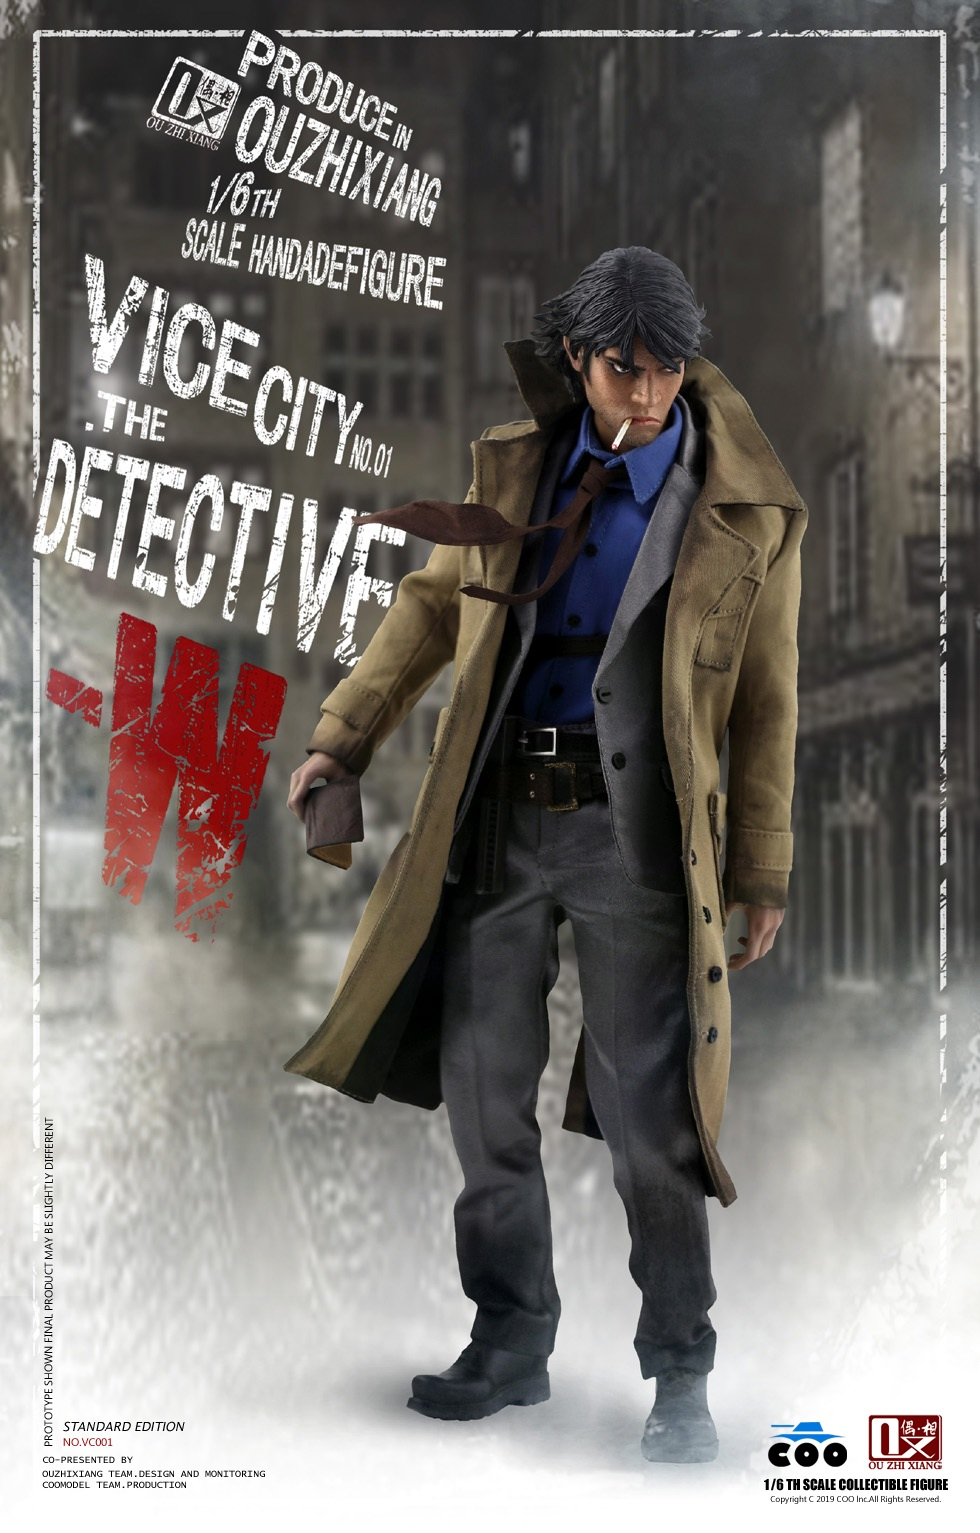 DetectiveW - NEW PRODUCT: COOMODEL X Even: 1/6 Vice City - Detective W [Standard Edition & Collector's Edition] - Four-headed configuration 20261810